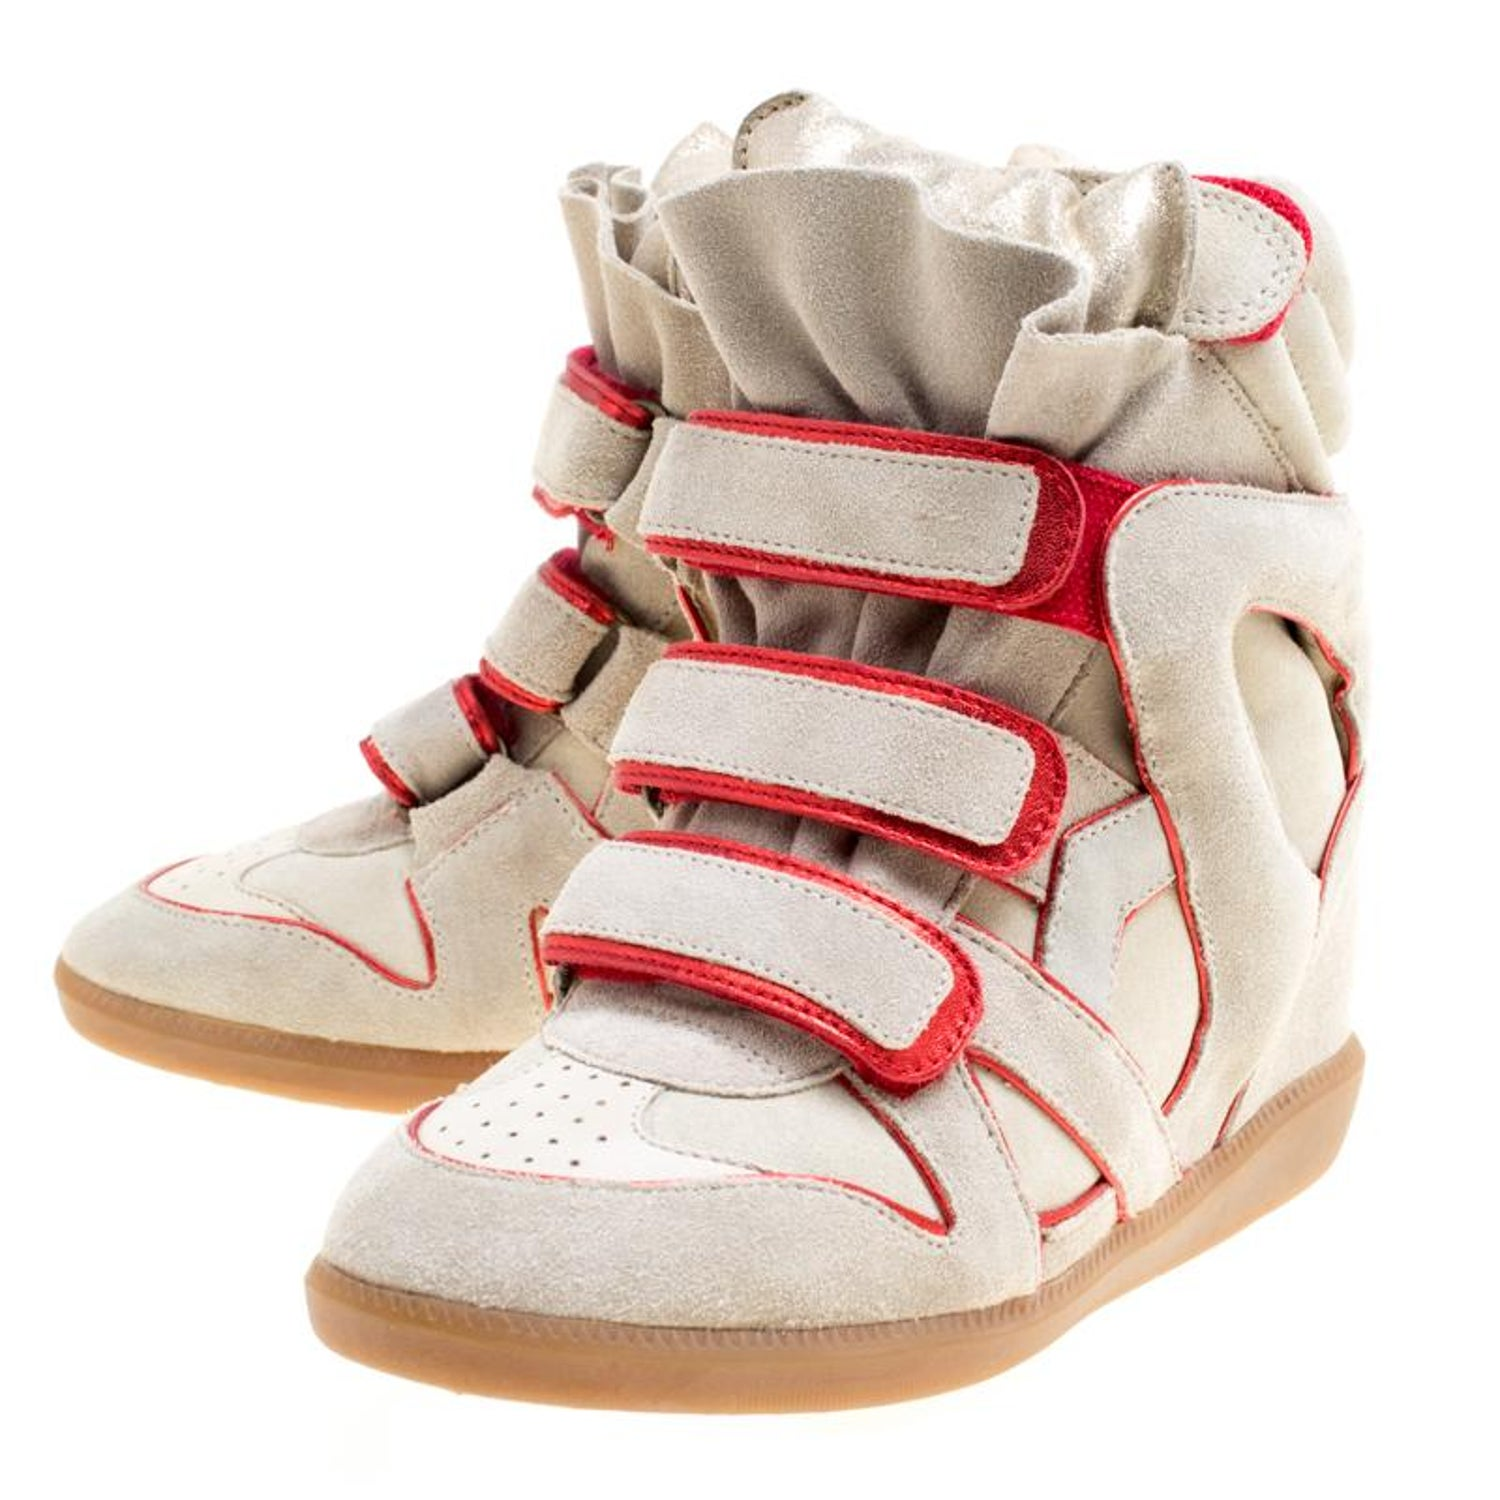 6711d965d69 Isabel Marant Grey Suede with Metalllic Red Leather Trim Bekett Wedge  Sneakers S For Sale at 1stdibs